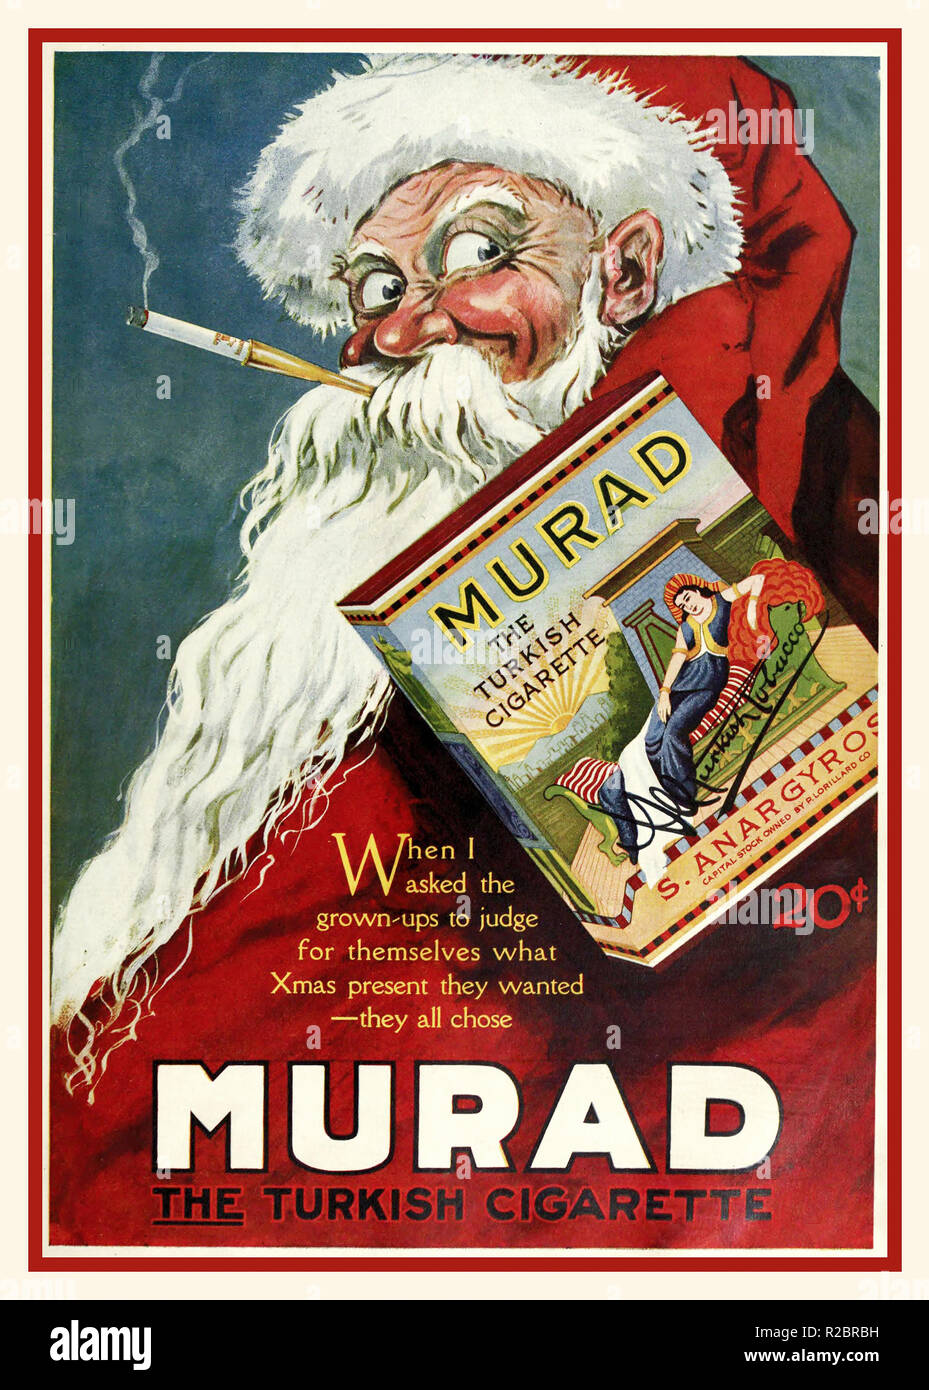 Vintage American USA press advertisement showing Santa Claus /Father Christmas  smoking a Turkish Murad Cigarette, Press Advertisement c1920  The Theater Magazine advertisements in the 1920's - Stock Image